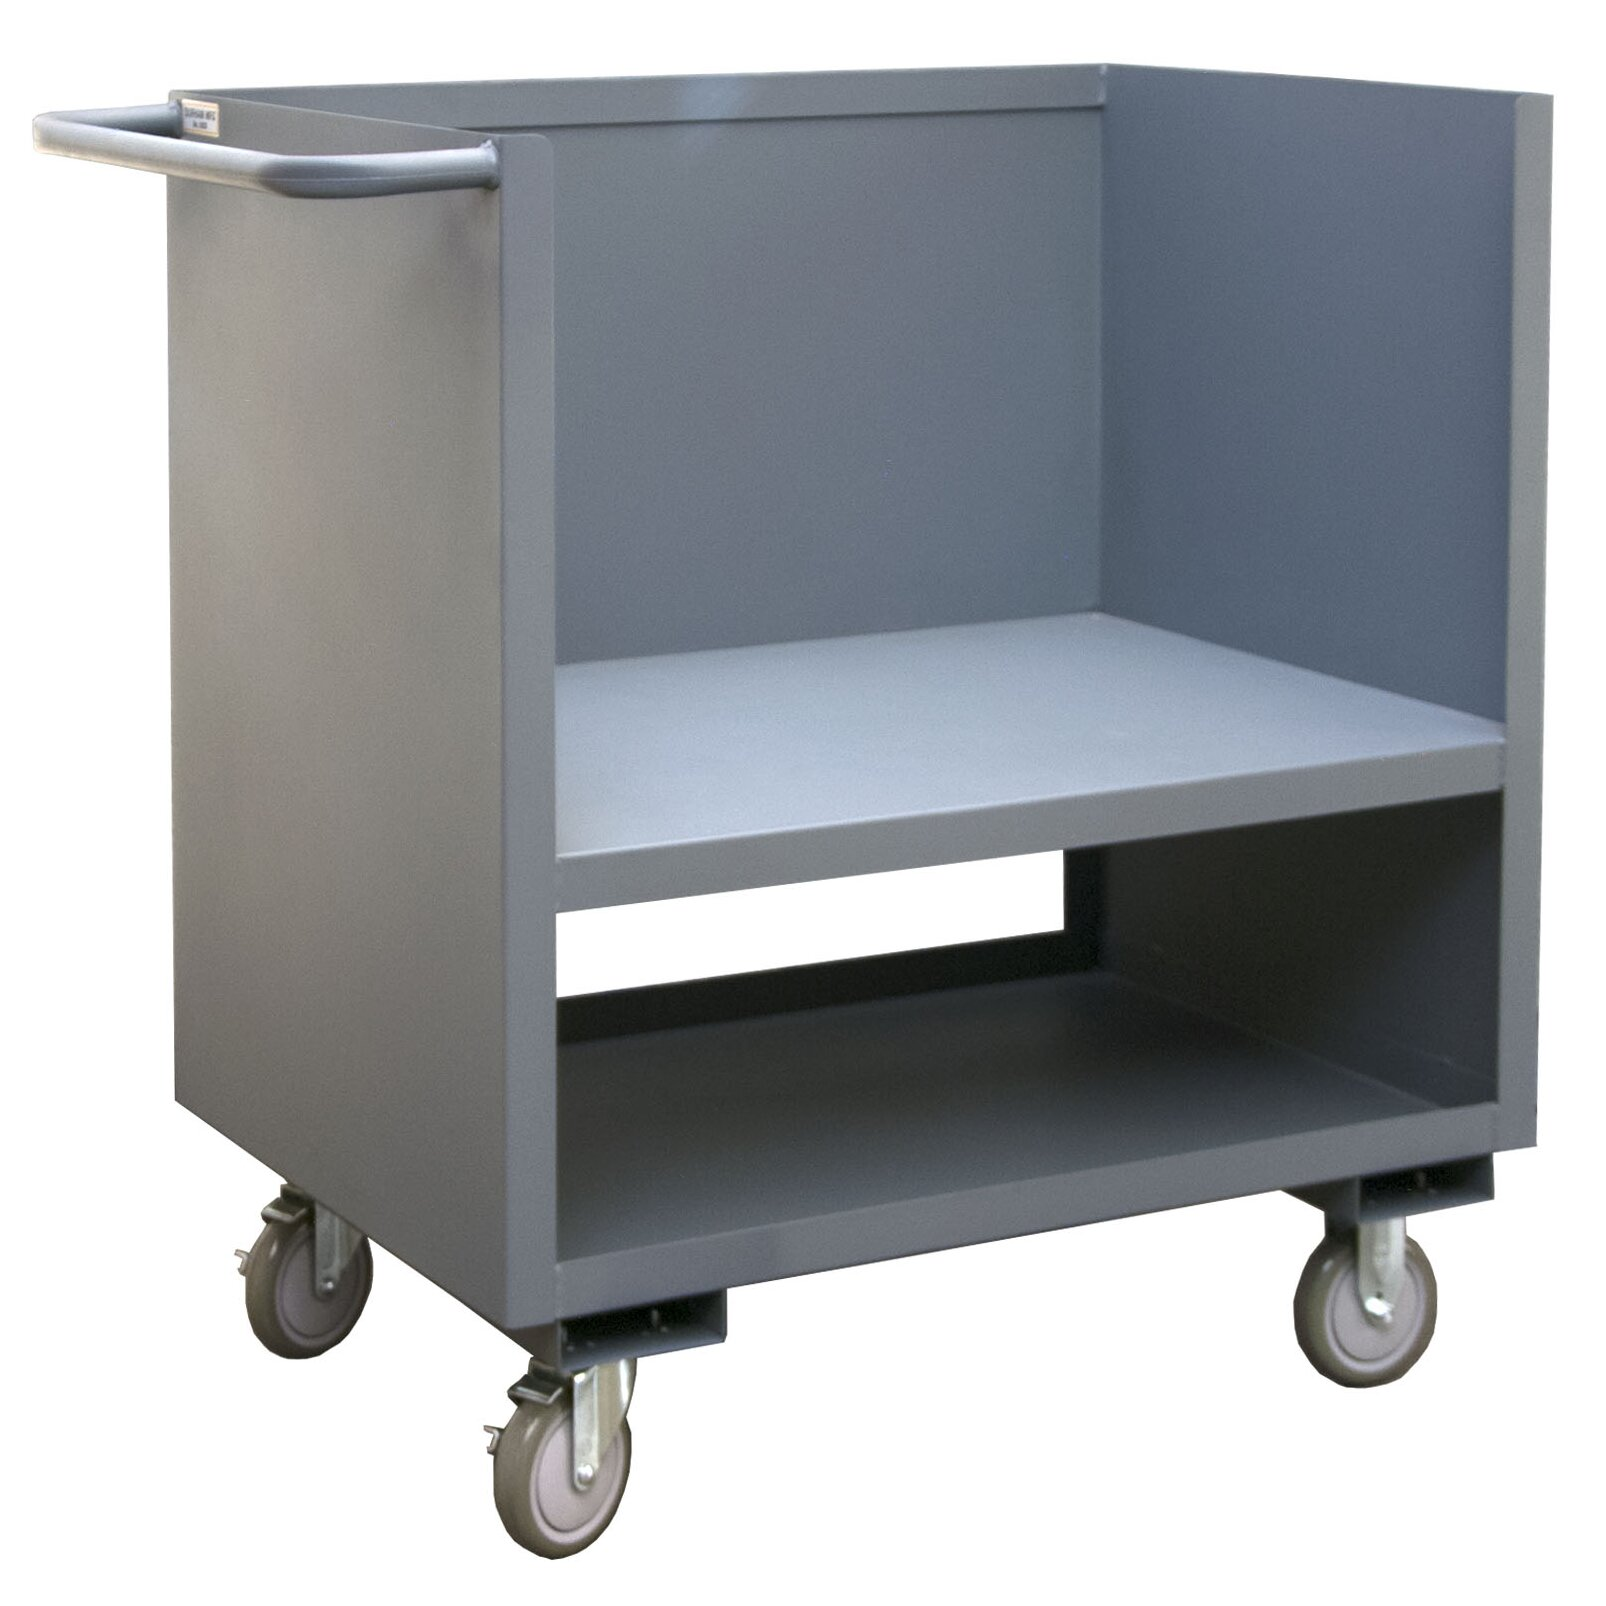 Factory Utility Cart: Durham Manufacturing Raised Deck Utility Cart